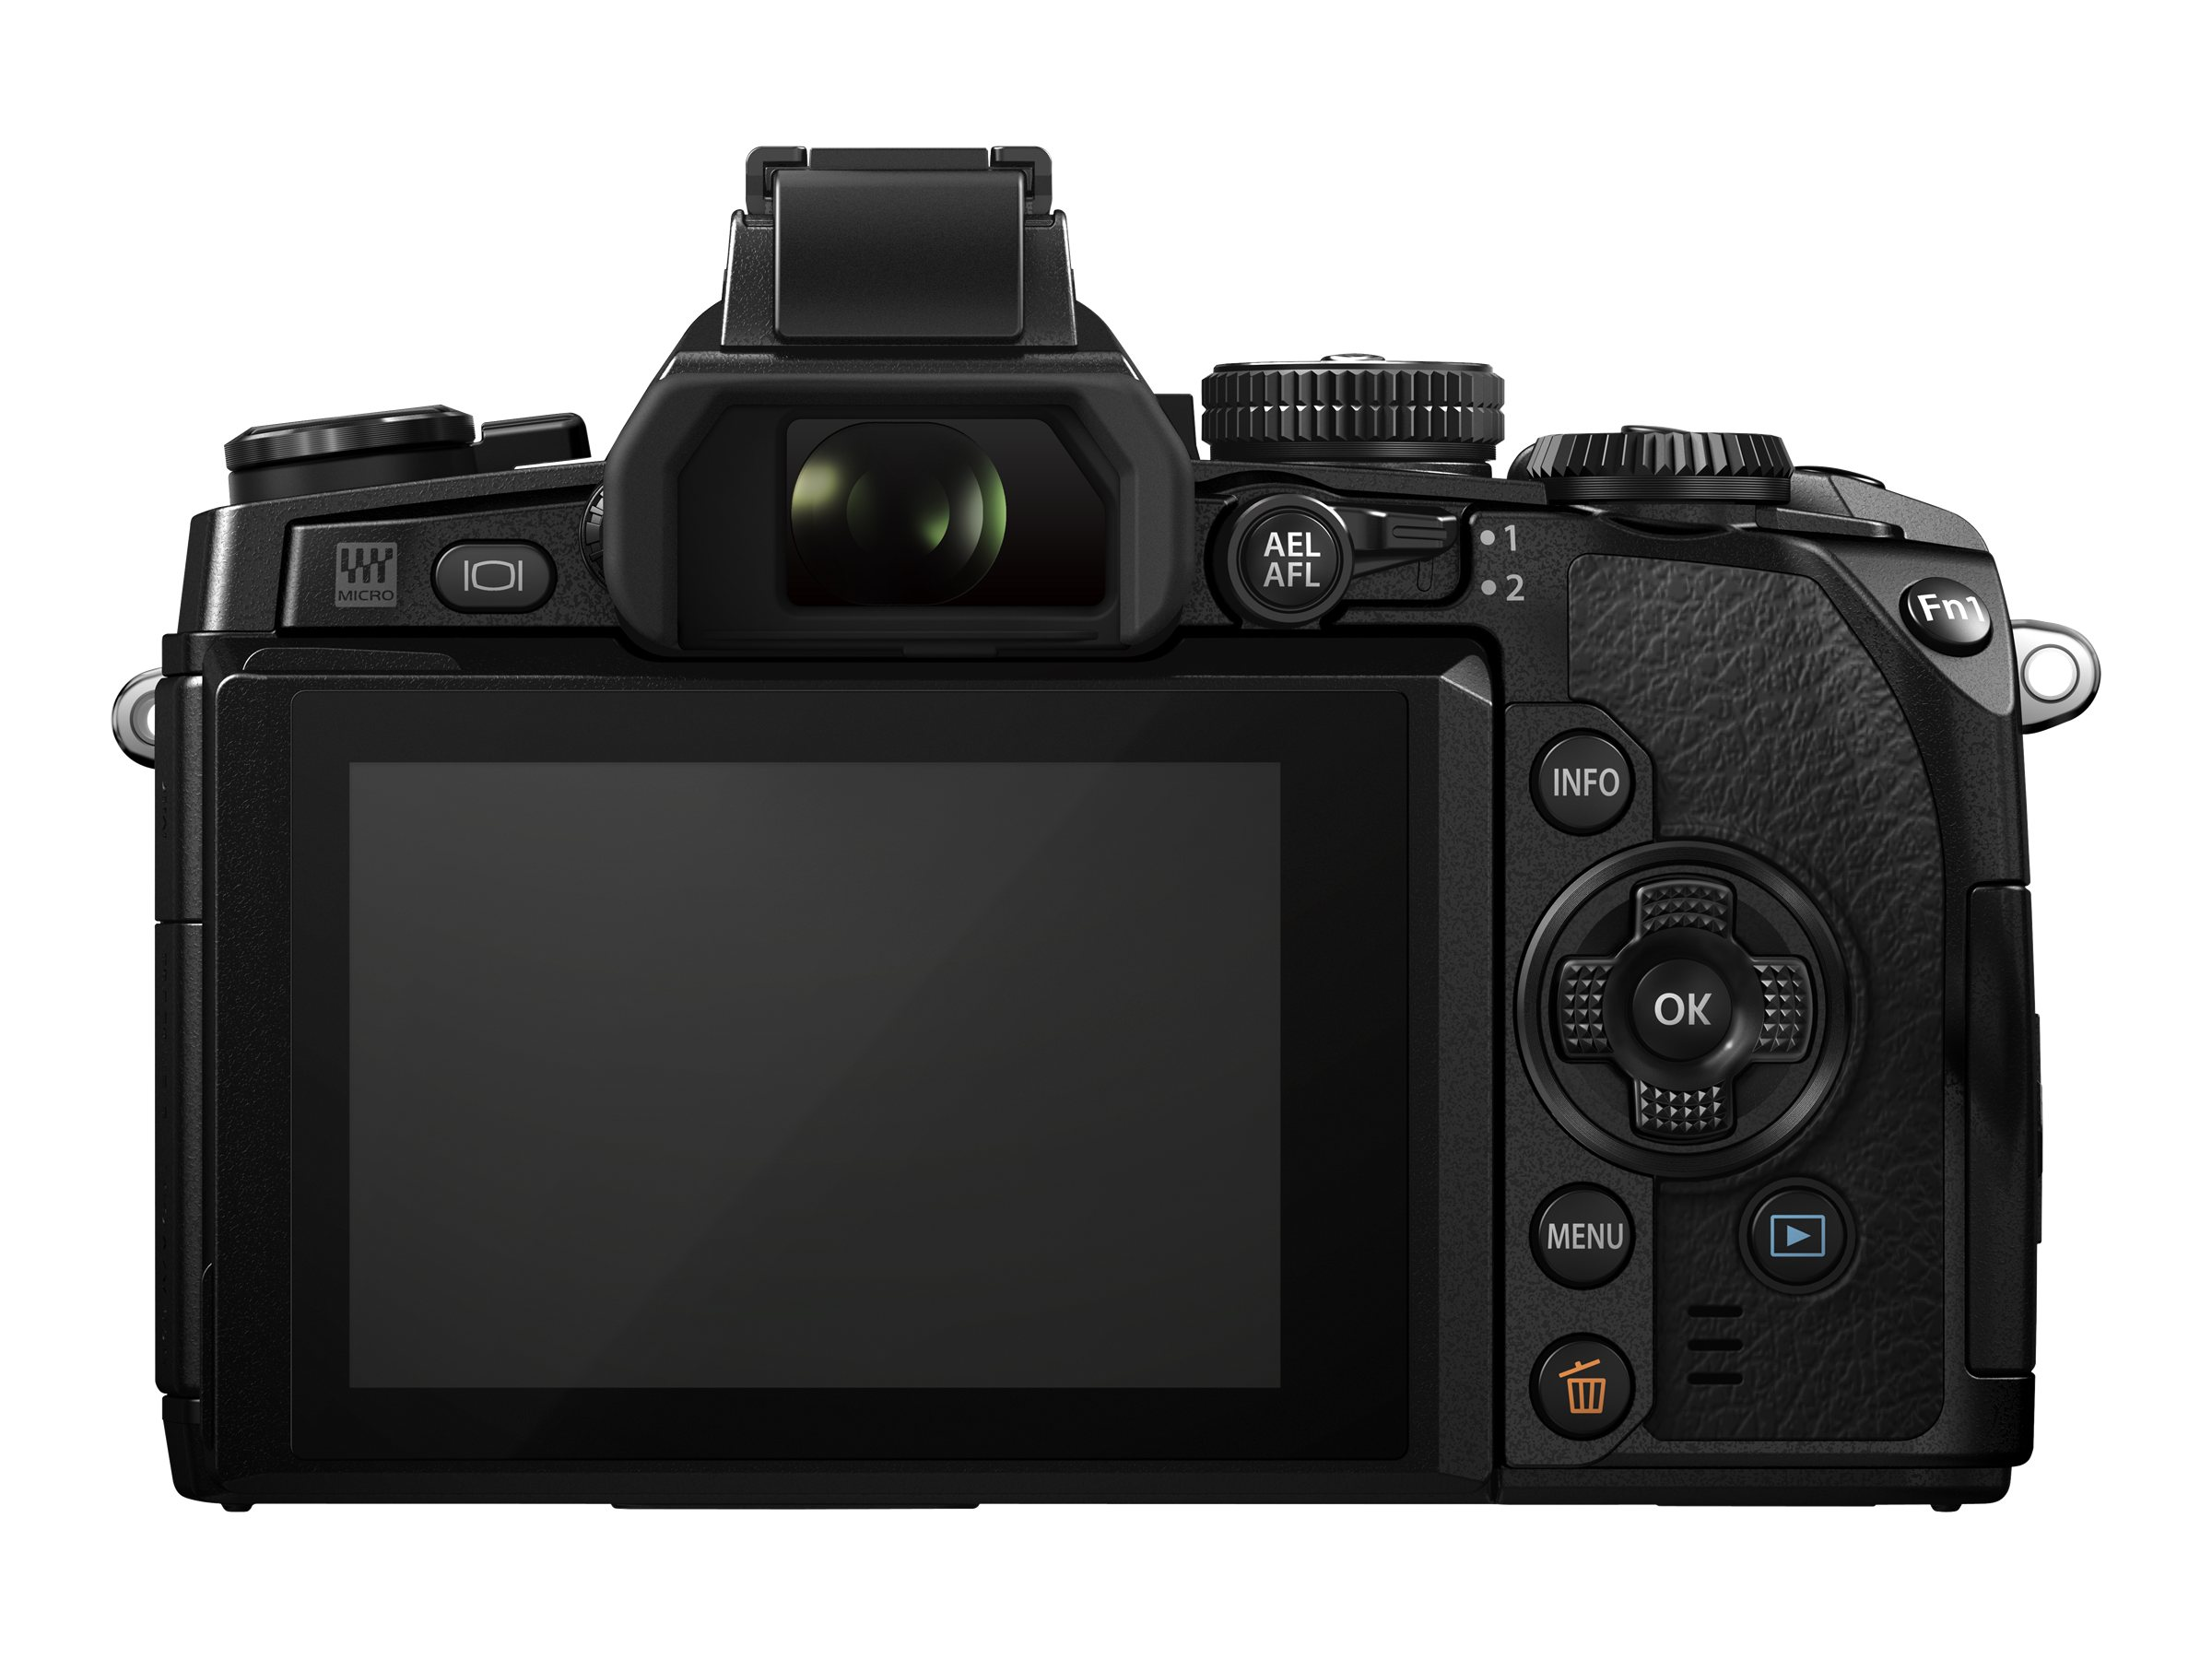 Olympus Olympus OM-D E-M1 Mirrorless Micro Four Thirds Digital Camera (Body Only), V207010BU000